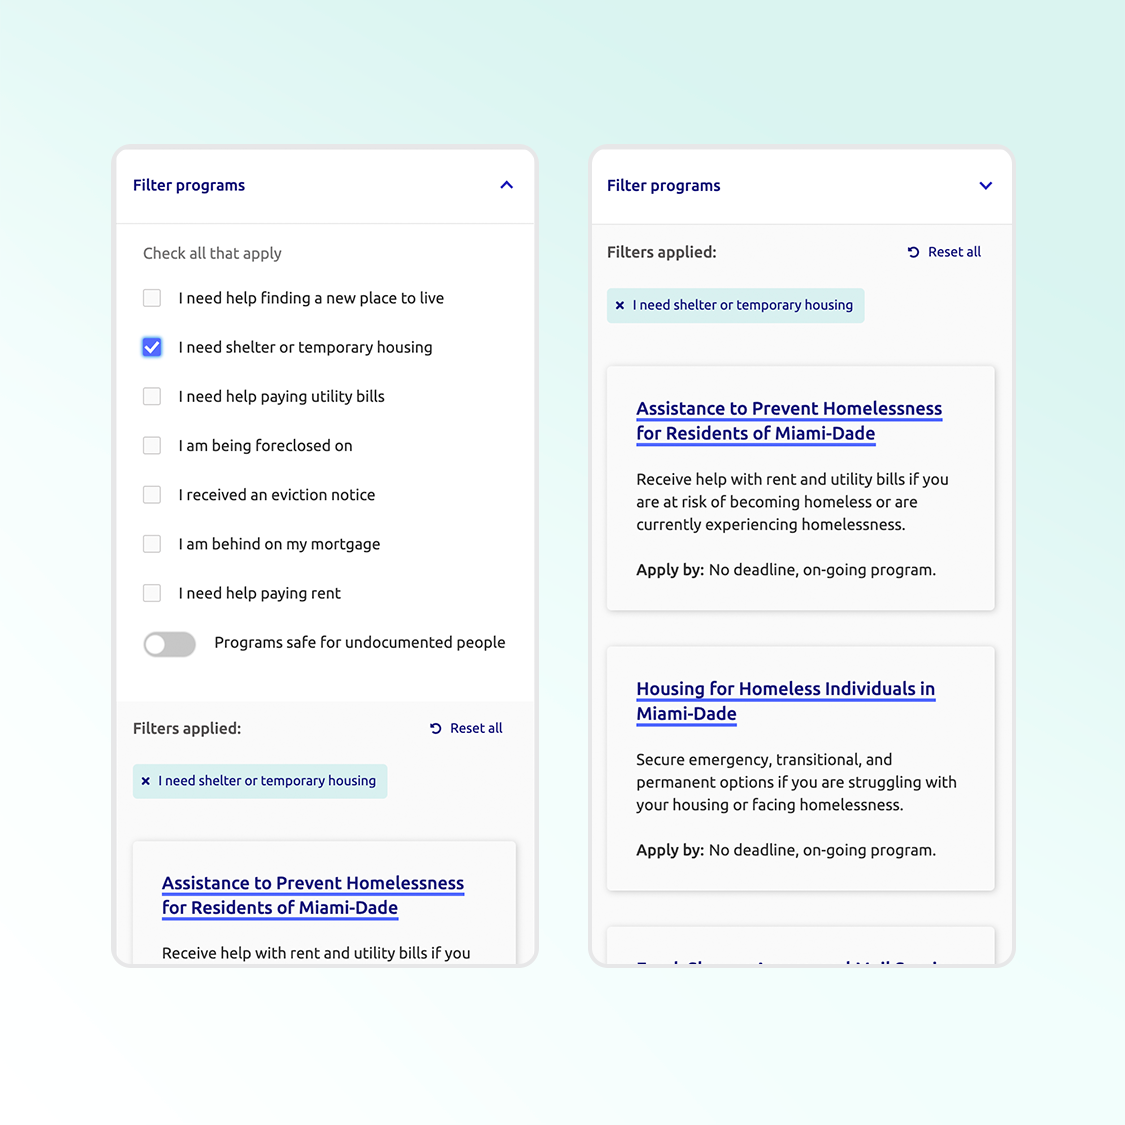 Screens from the Rent & Housing program filters: user can choose specific situational or demographic needs from the filter dropdown, and the tool shows only programs that correspond to that need.